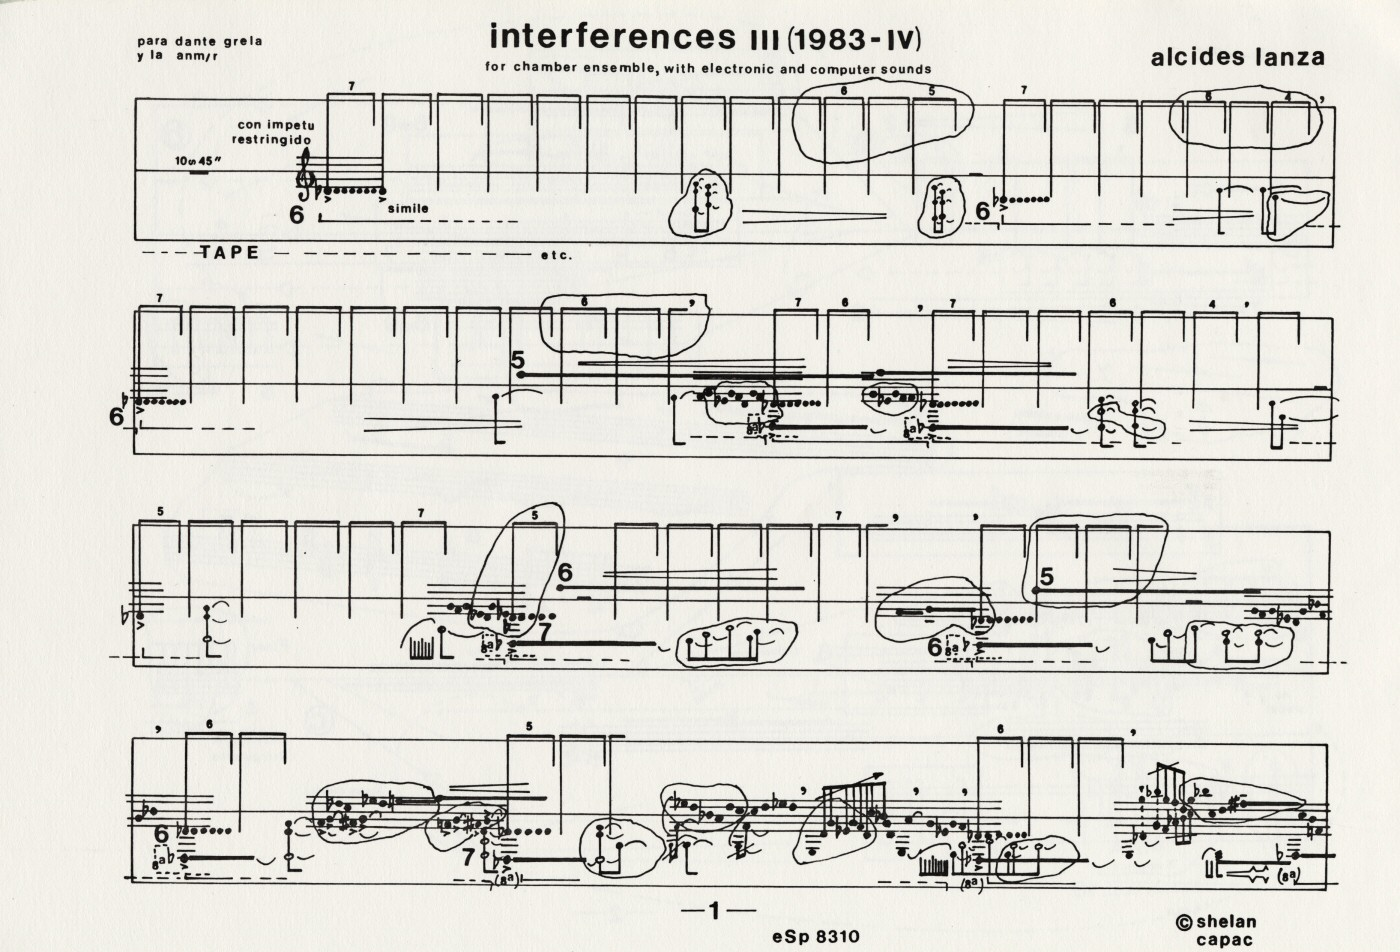 interferences III [1983-IV], 1983